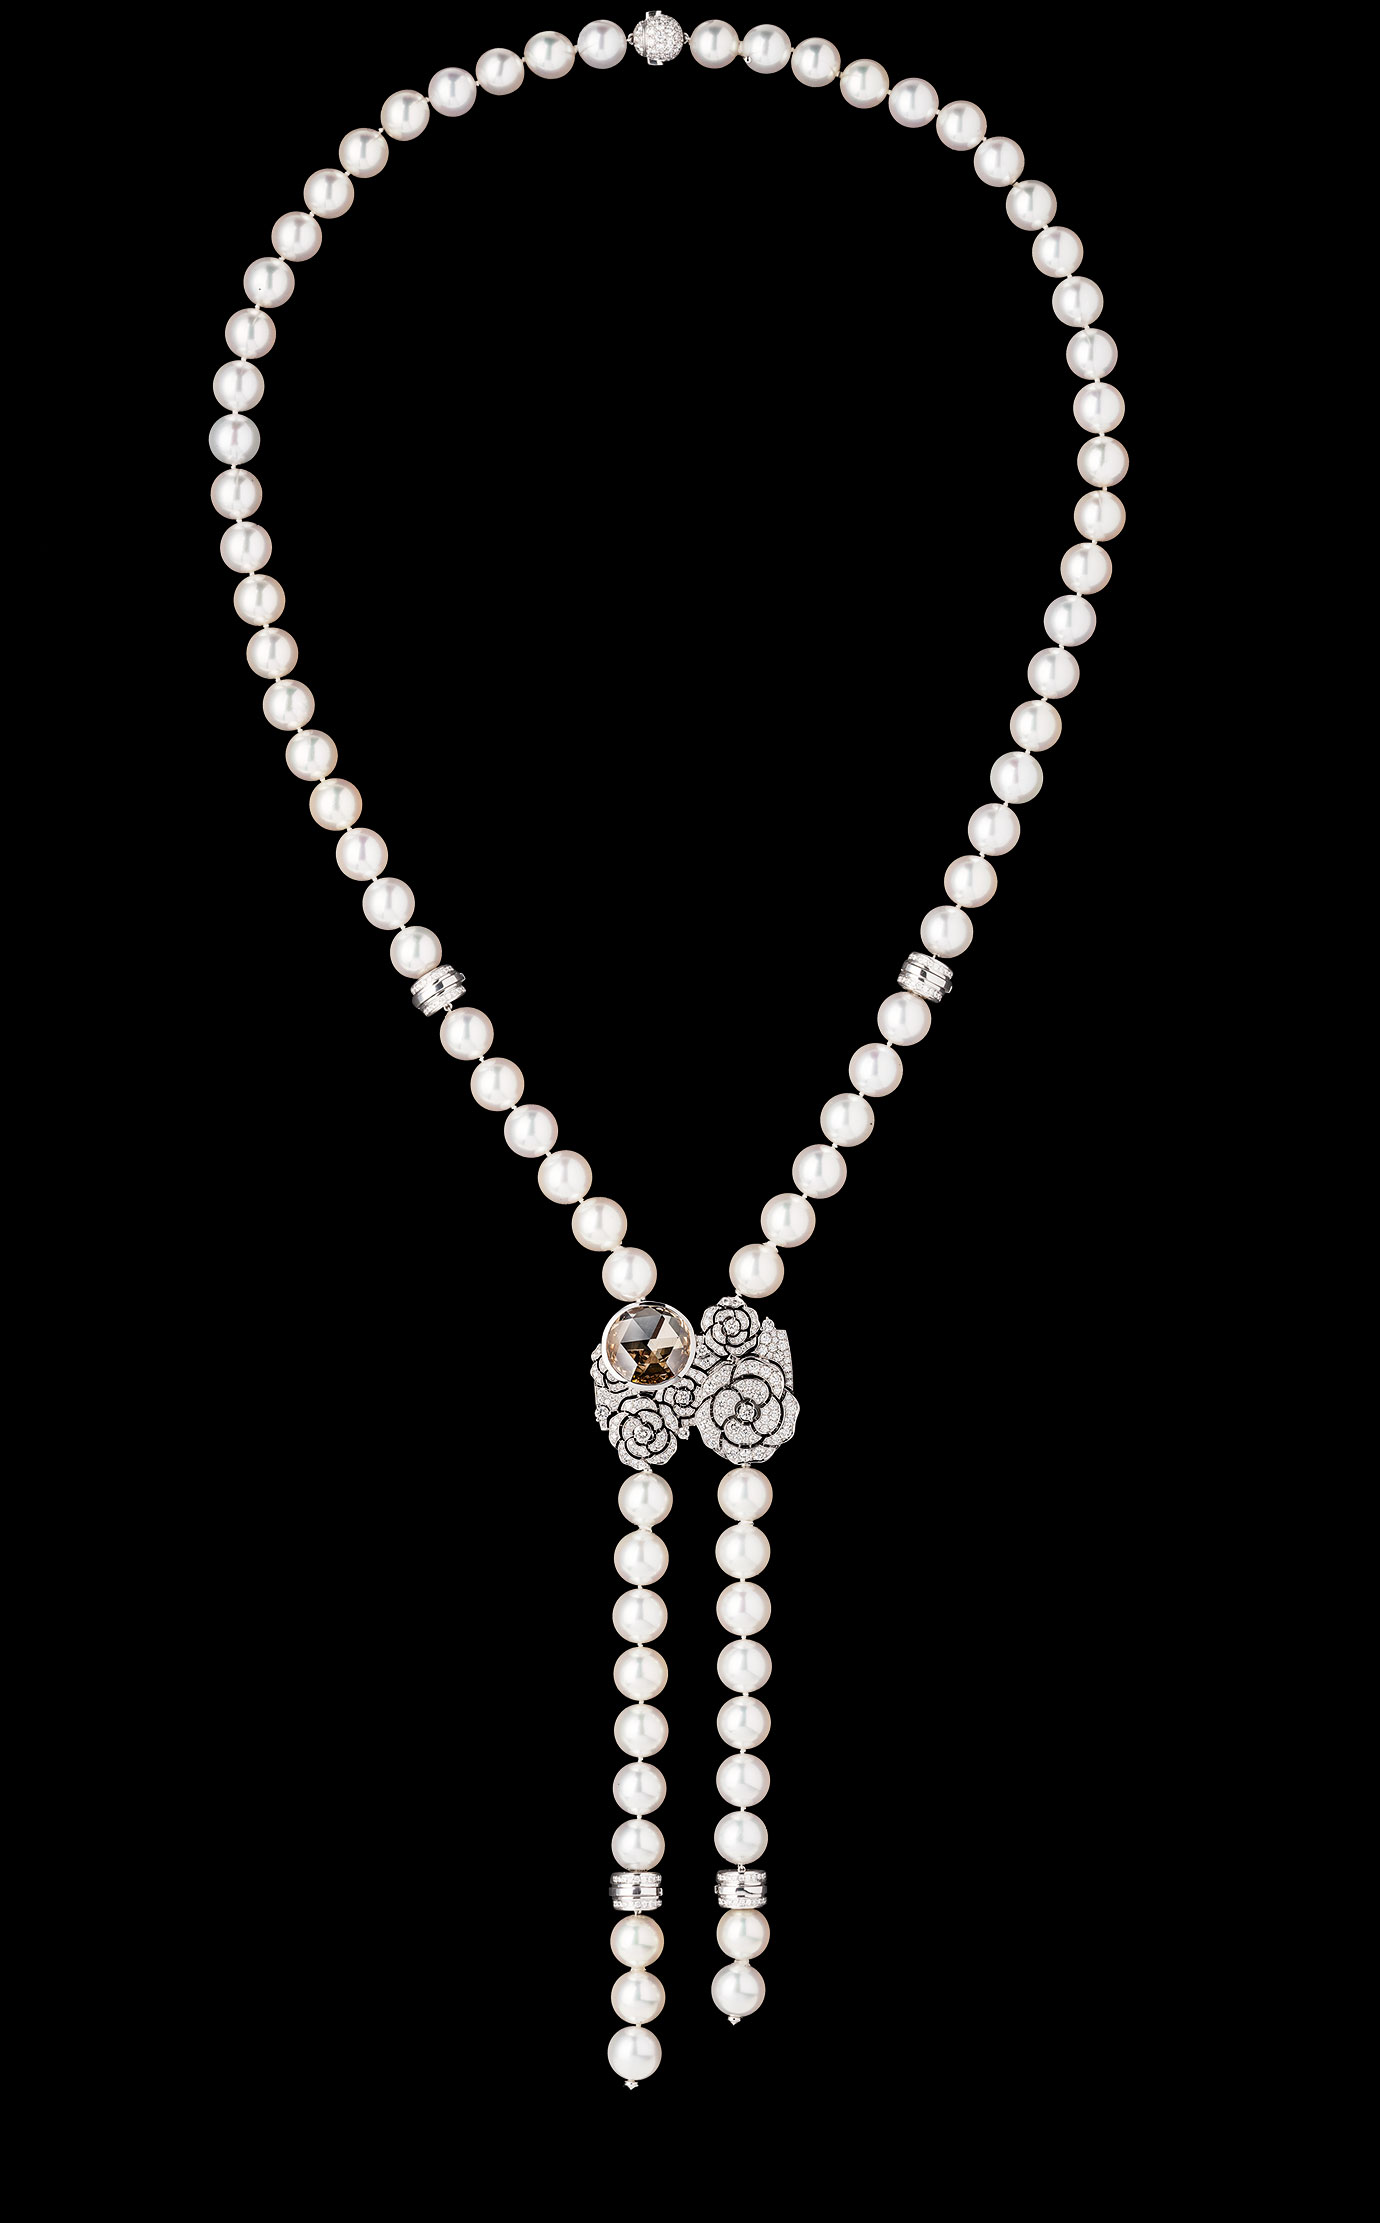 'Camélia' Watch. This pearl sautoir, which can also be worn as a bracelet, holds at its heart a watch dial concealed behind a bouquet of camellias. 18K white gold set with 503 diamonds, including one 10-carat Fancy Brown Yellow diamond. - Necklace